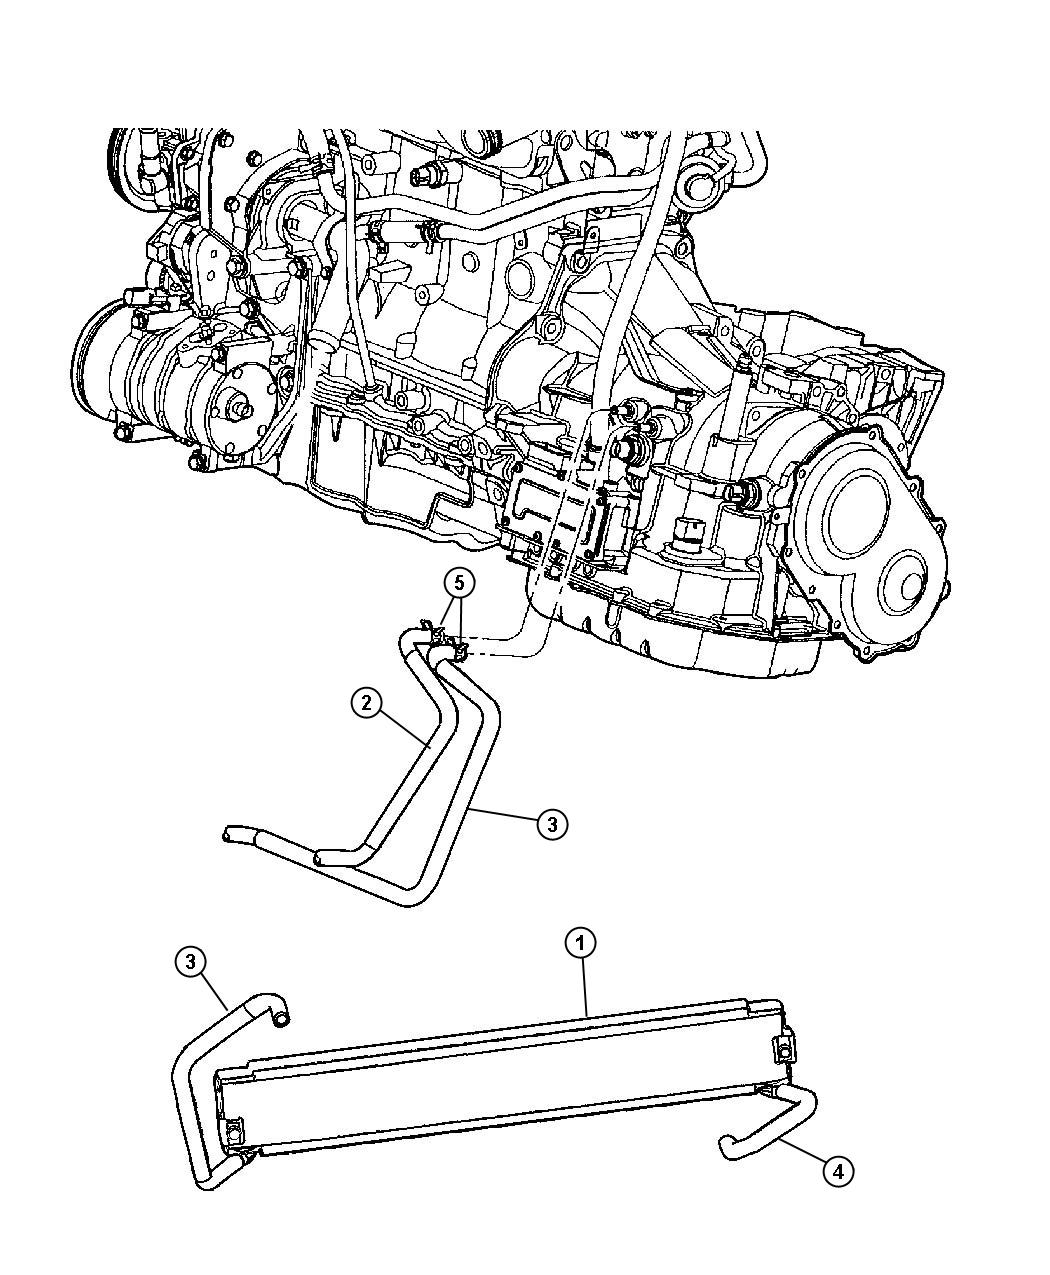 [2002 Chrysler Pt Cruiser Manual Transmission Schematic